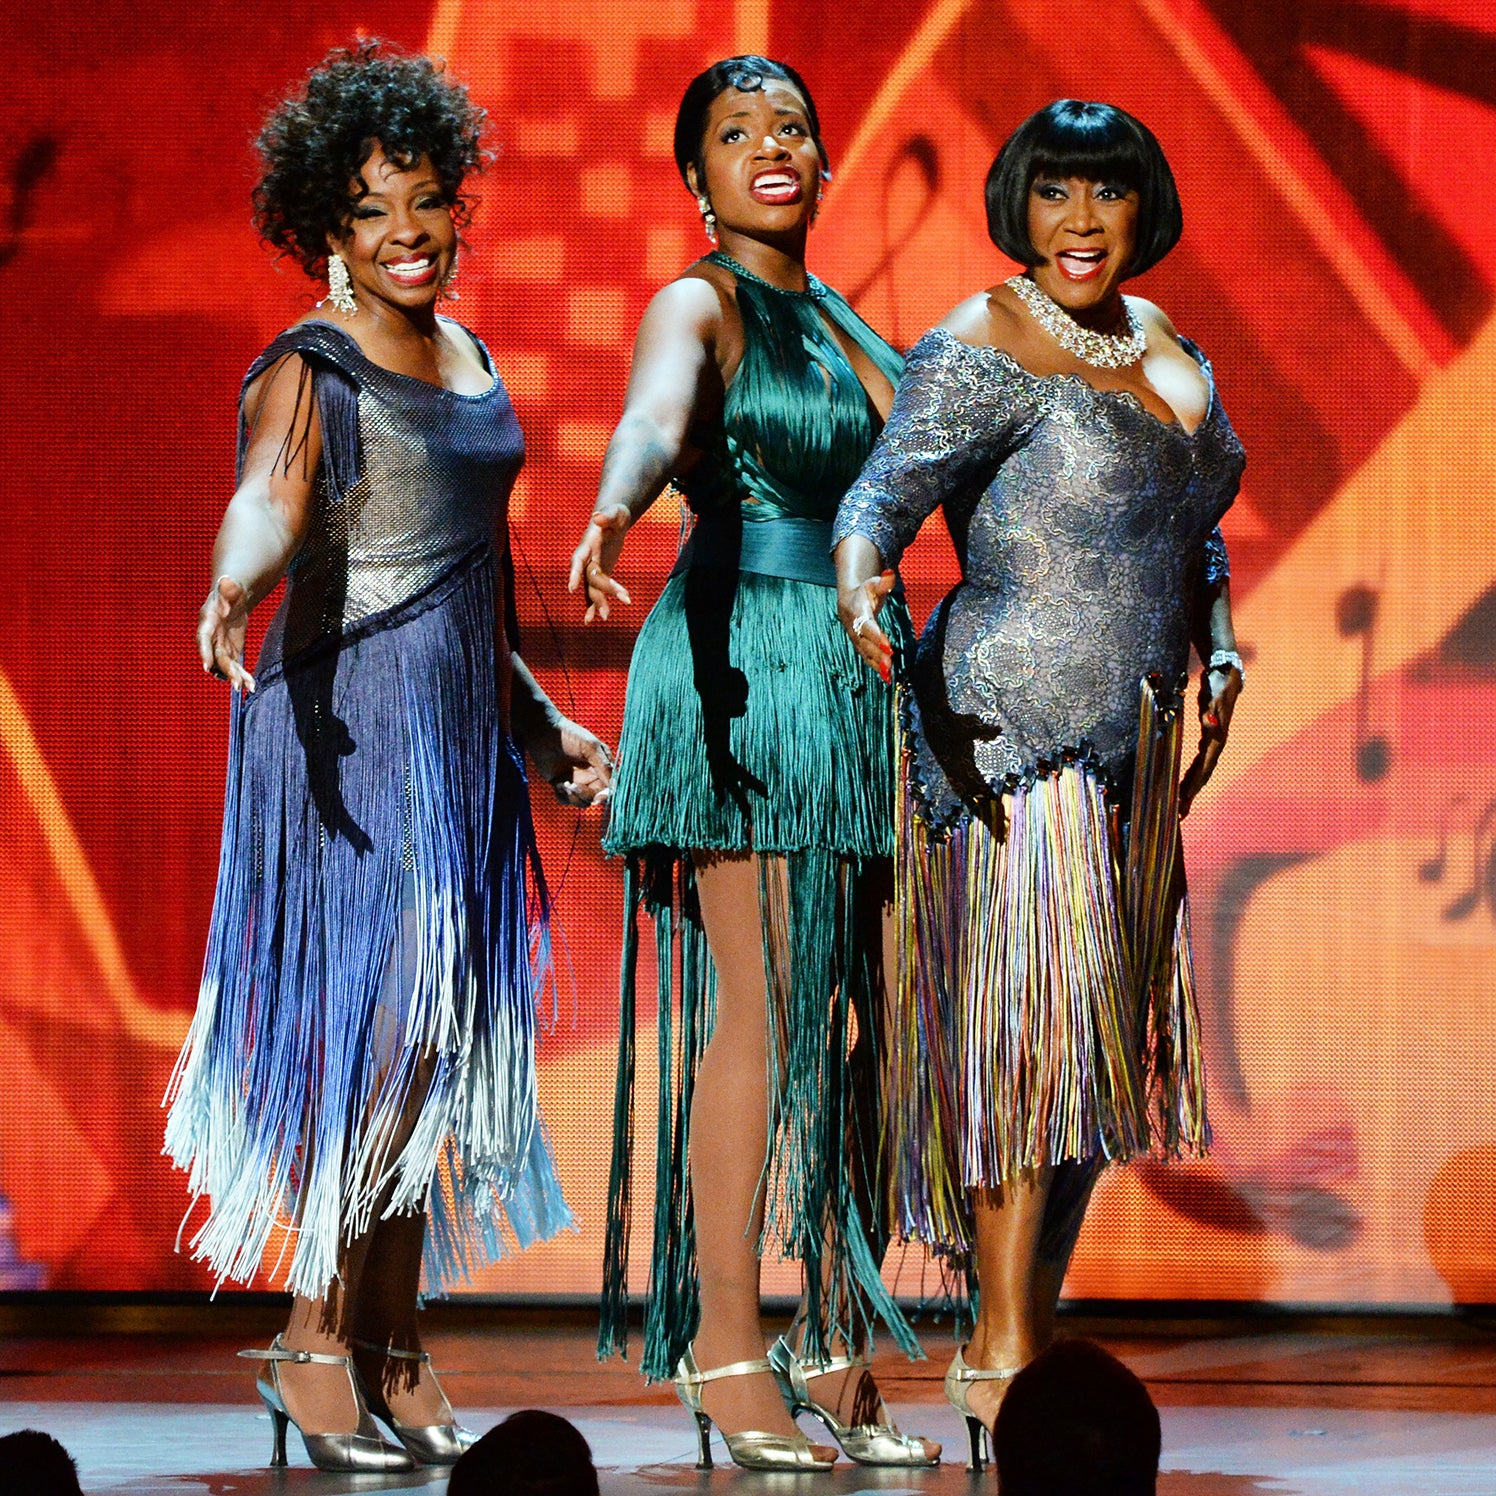 Must-See: Watch Fantasia, Patti LaBelle and Gladys Knight's Tony Awards Performance